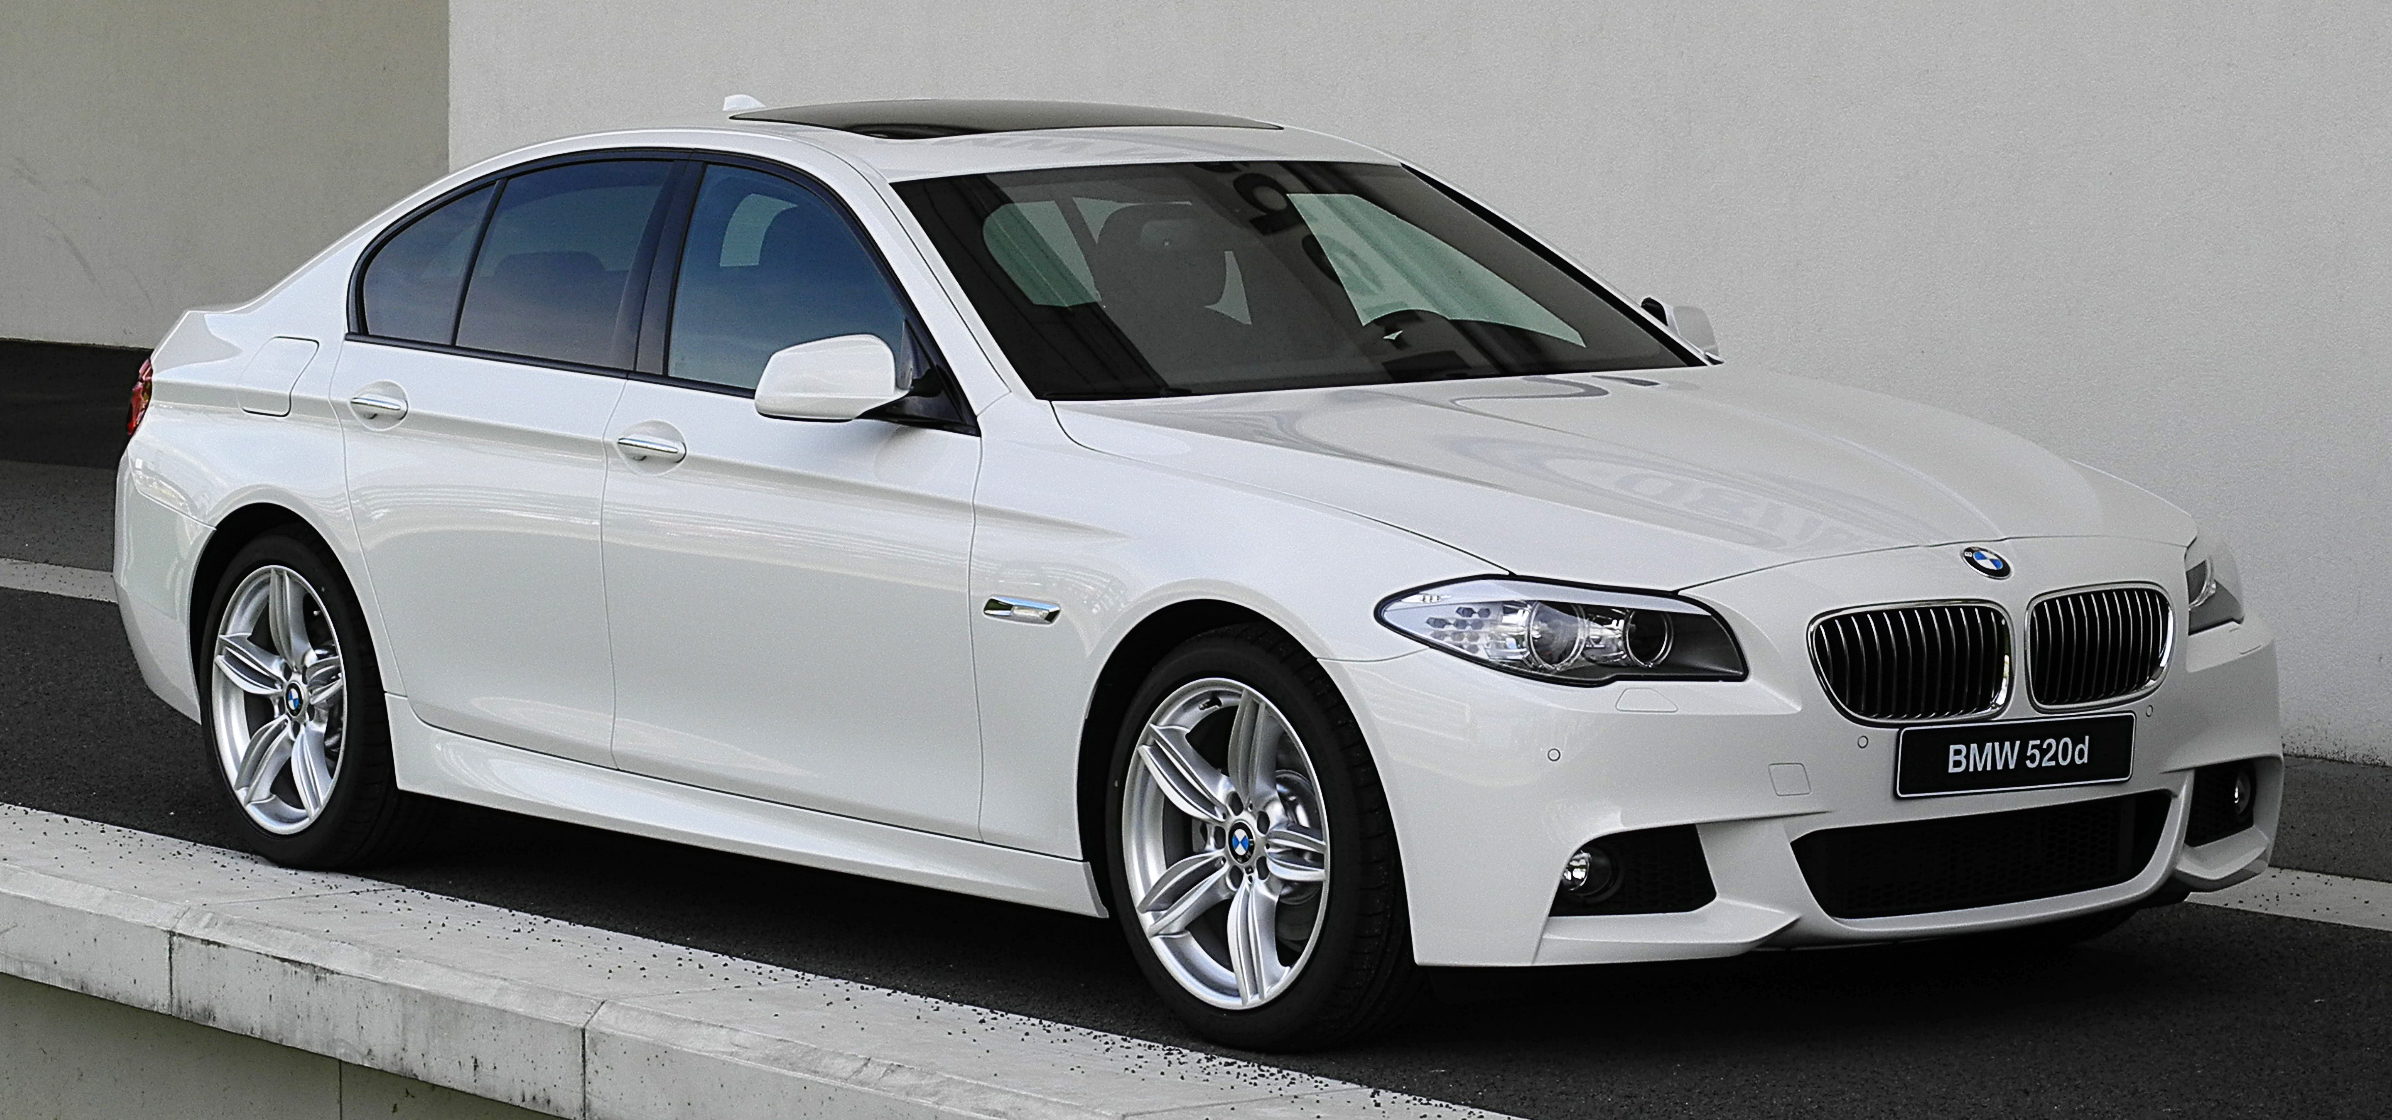 file bmw 520d m sportpaket f10 frontansicht 1 2 juli 2011 d wikipedia. Black Bedroom Furniture Sets. Home Design Ideas